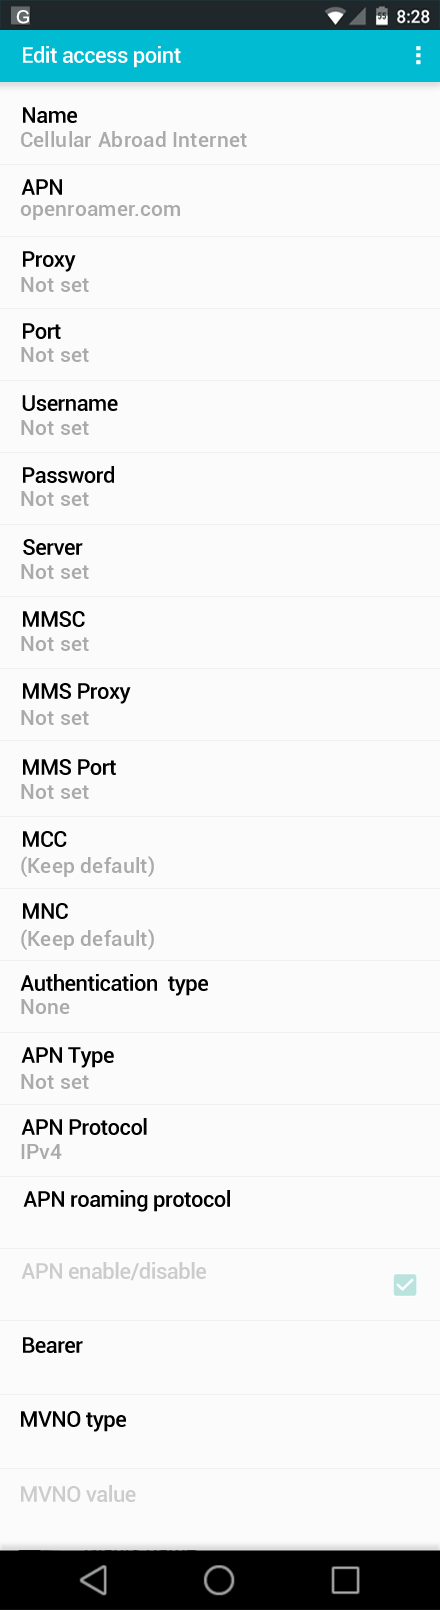 Cellular Abroad Internet APN settings for Android screenshot